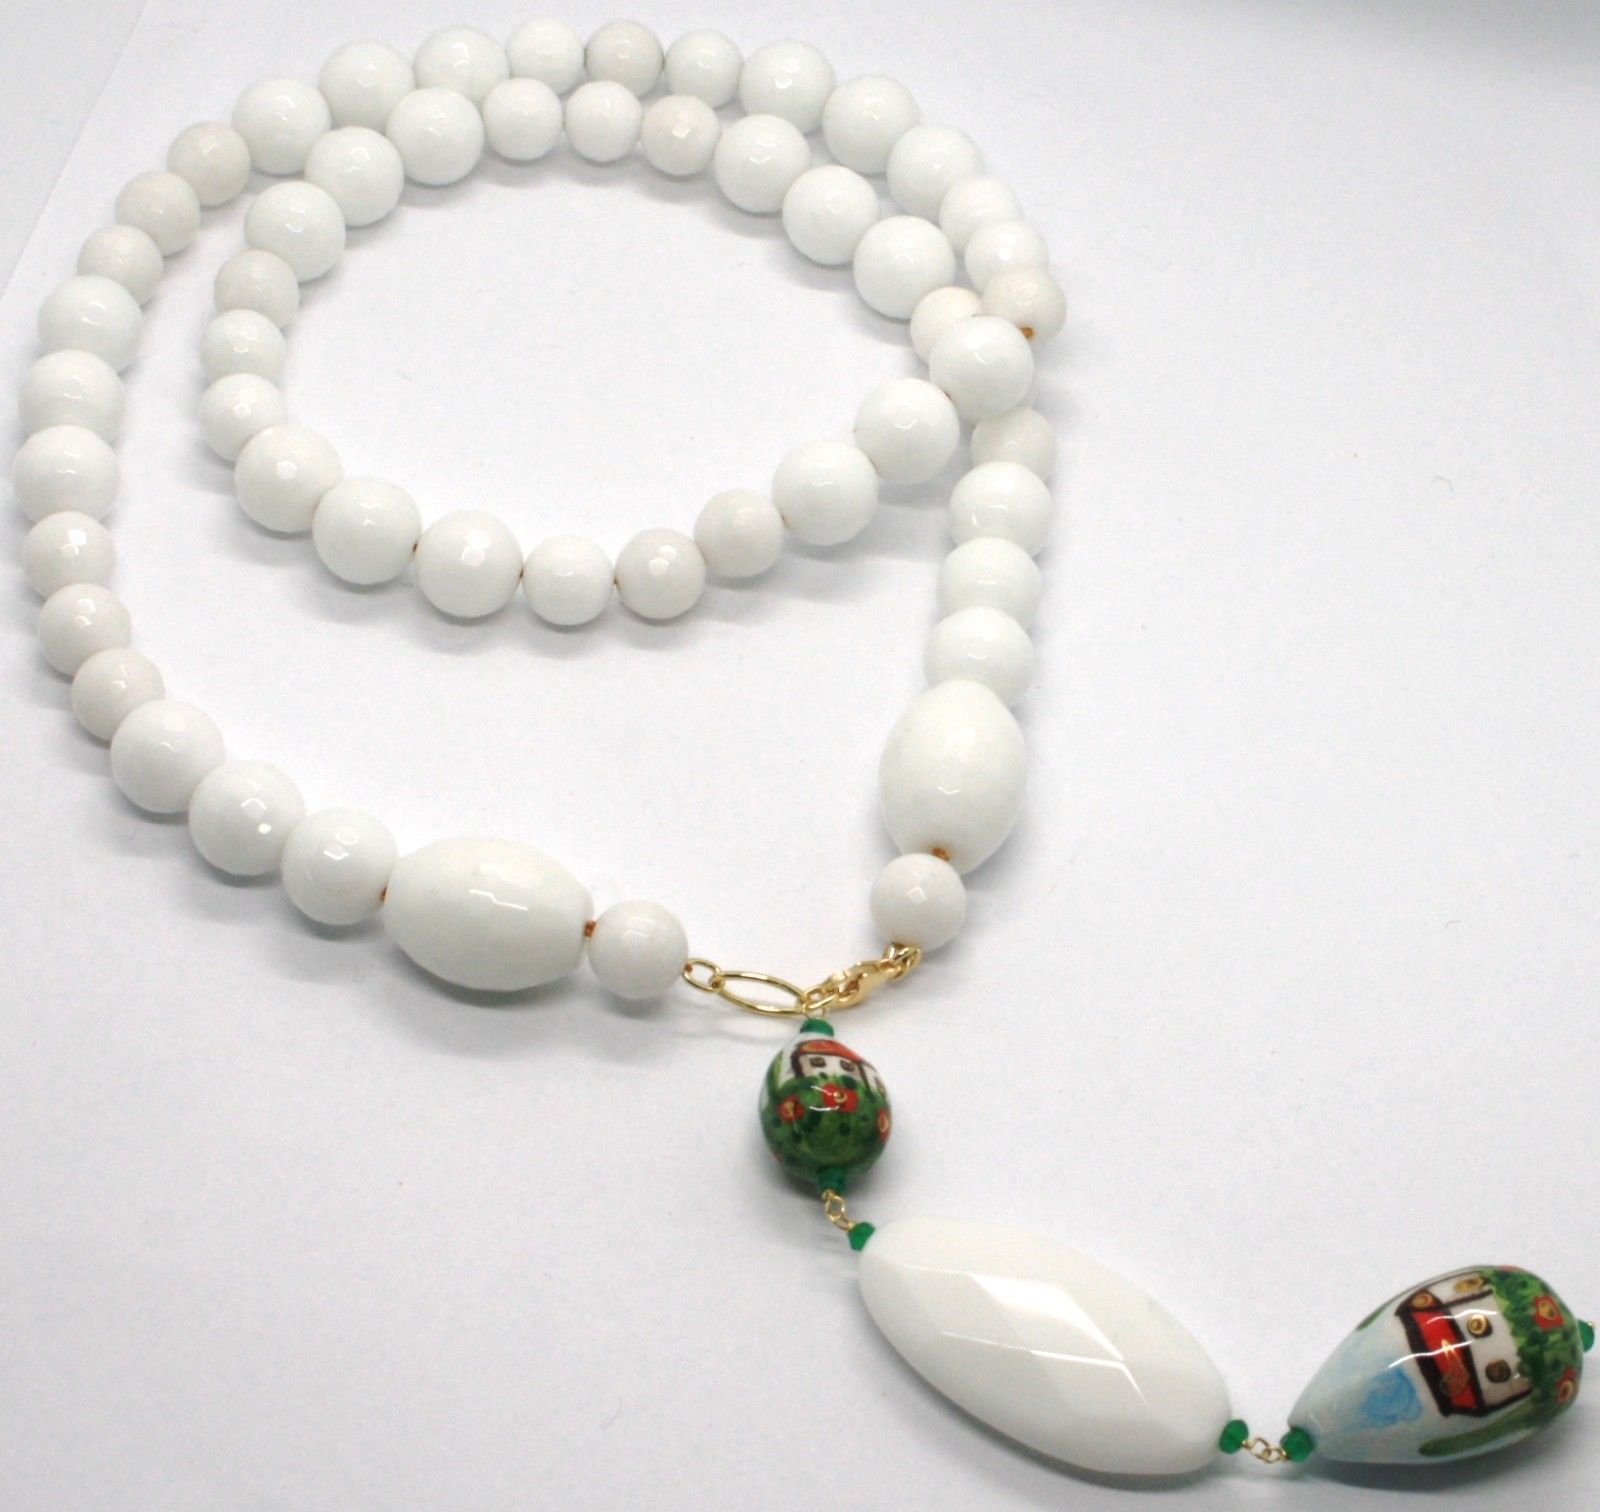 18K YELLOW GOLD LARIAT NECKLACE WHITE AGATE & CERAMIC HOME HAND PAINTED IN ITALY